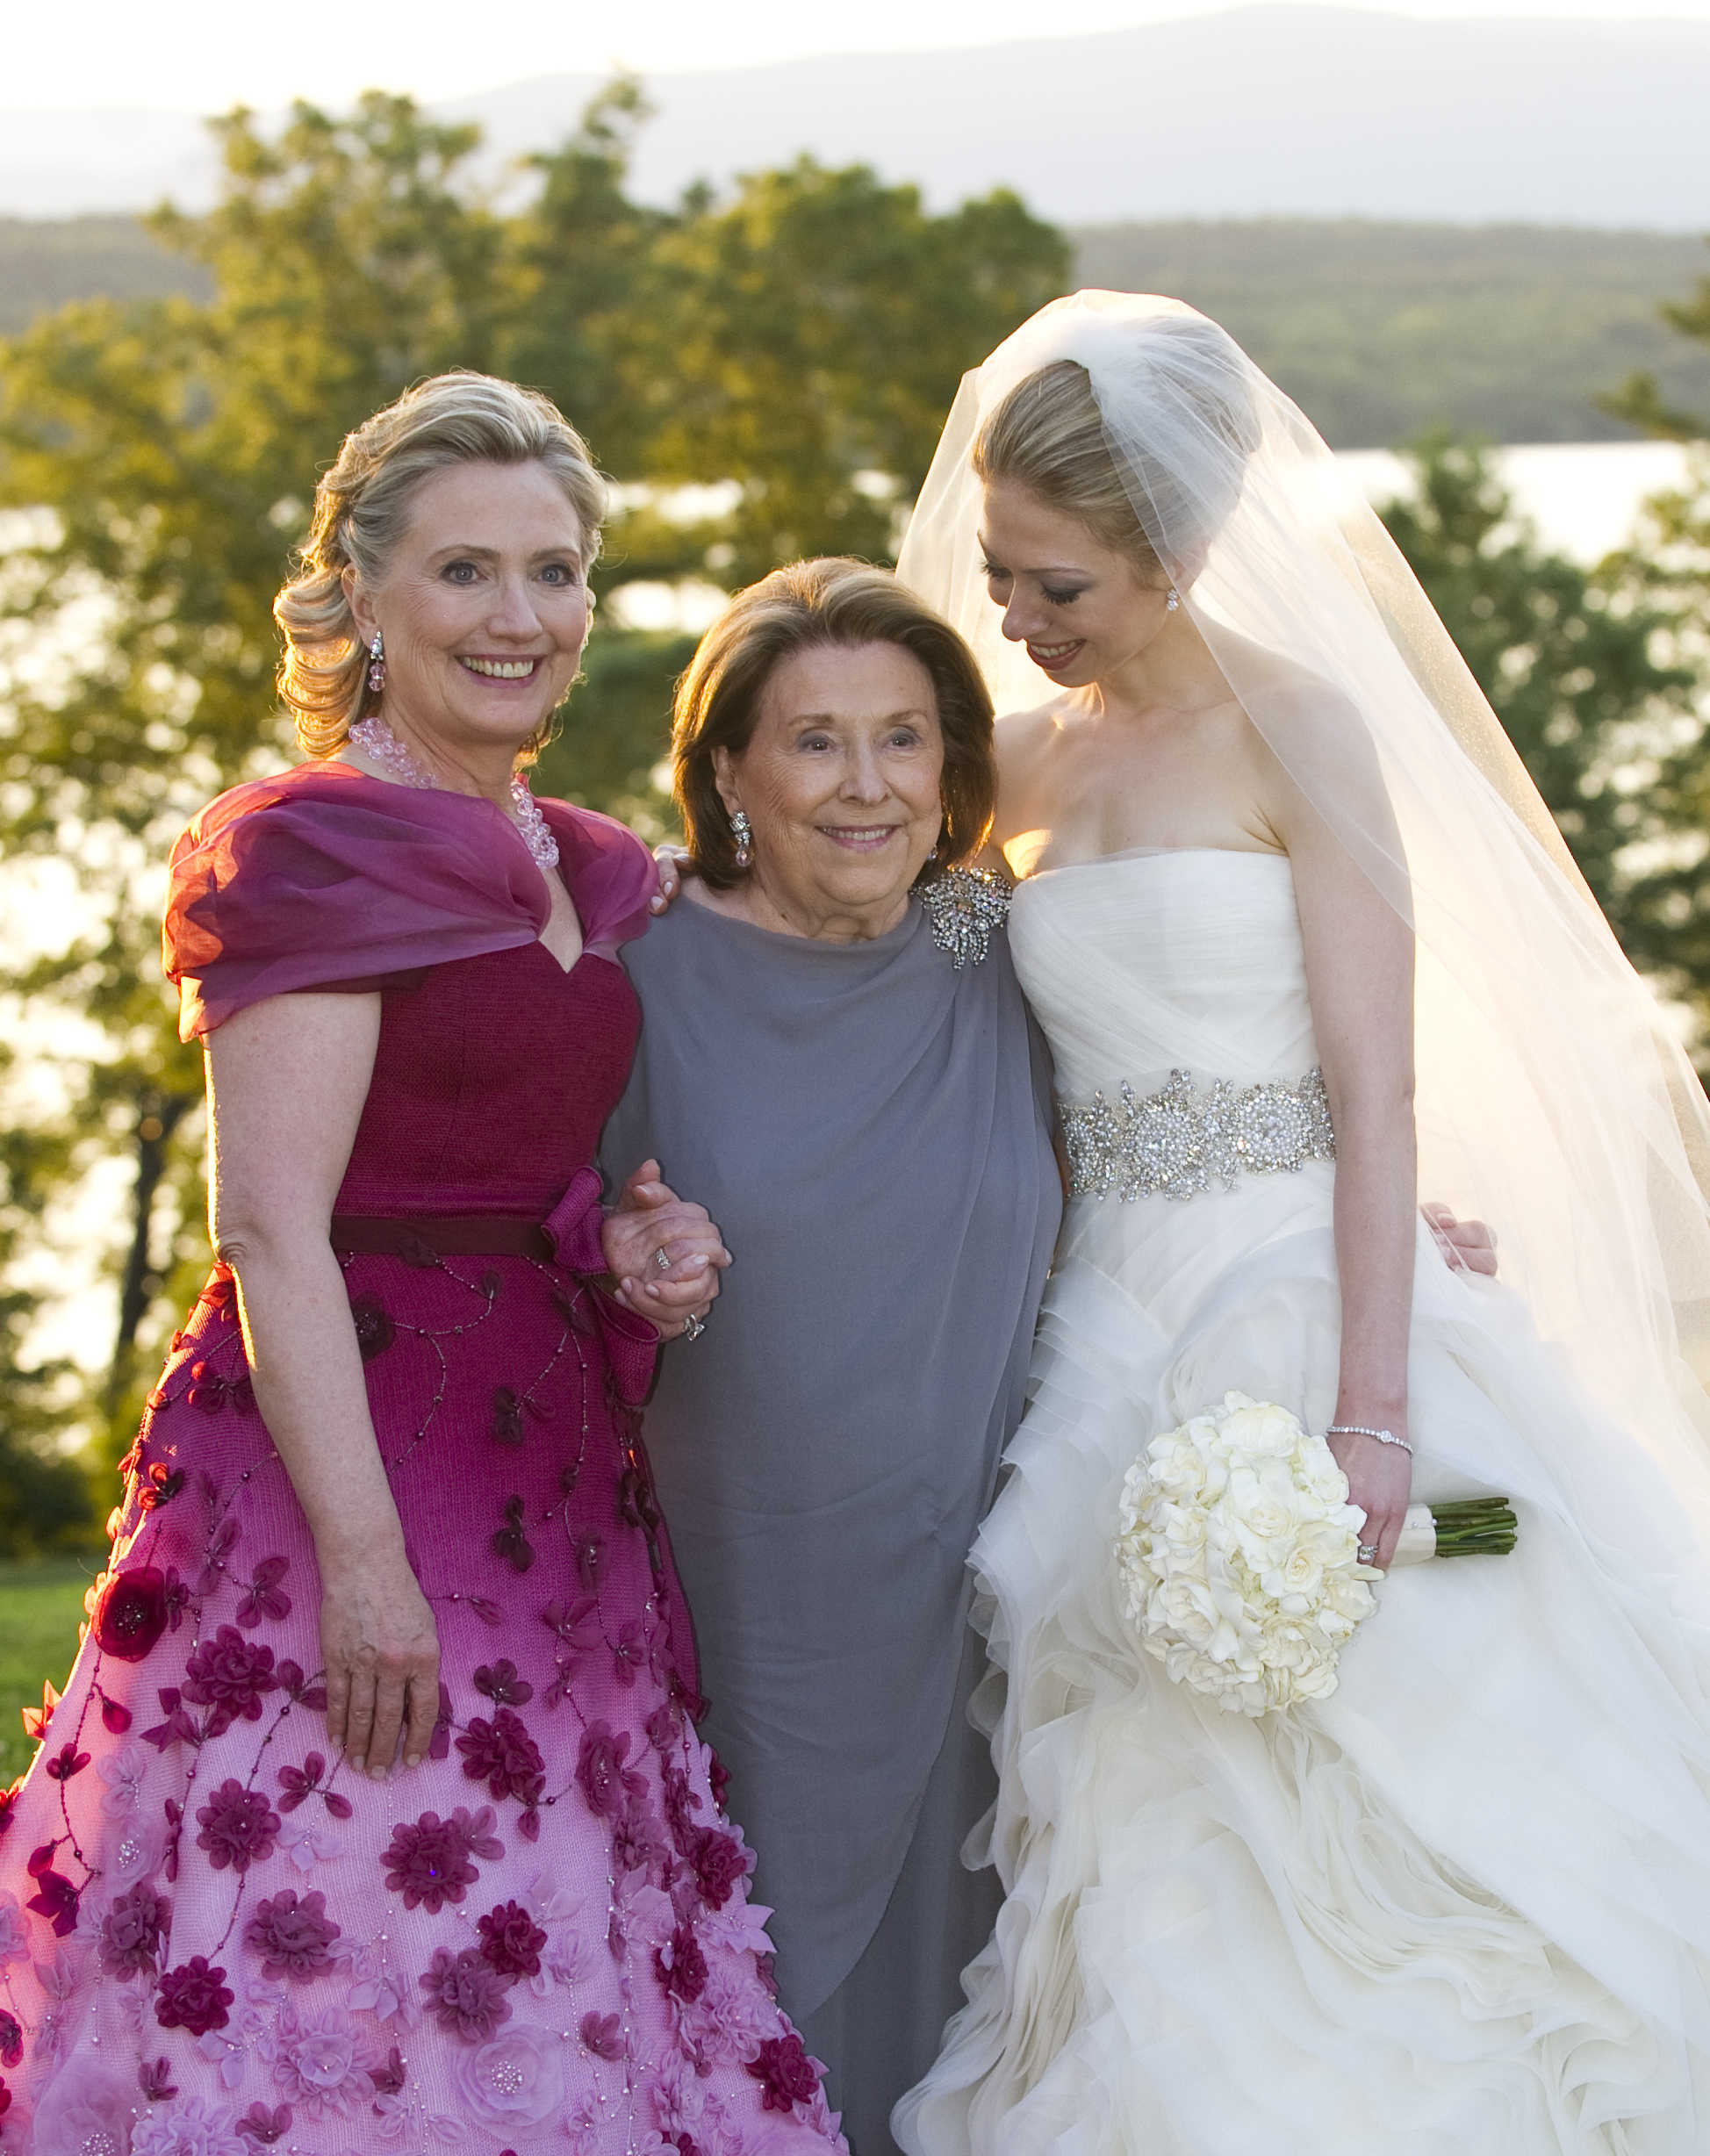 In this handout image provided by Barbara Kinney, (L-R) U.S. Secretary of State Hillary Clinton, her mother Dorothy Rodham and Chelsea Clinton pose during the wedding of Chelsea Clinton and Marc Mezvinsky at the Astor Courts Estate in Rhinebeck, N.Y., on July 31, 2010.